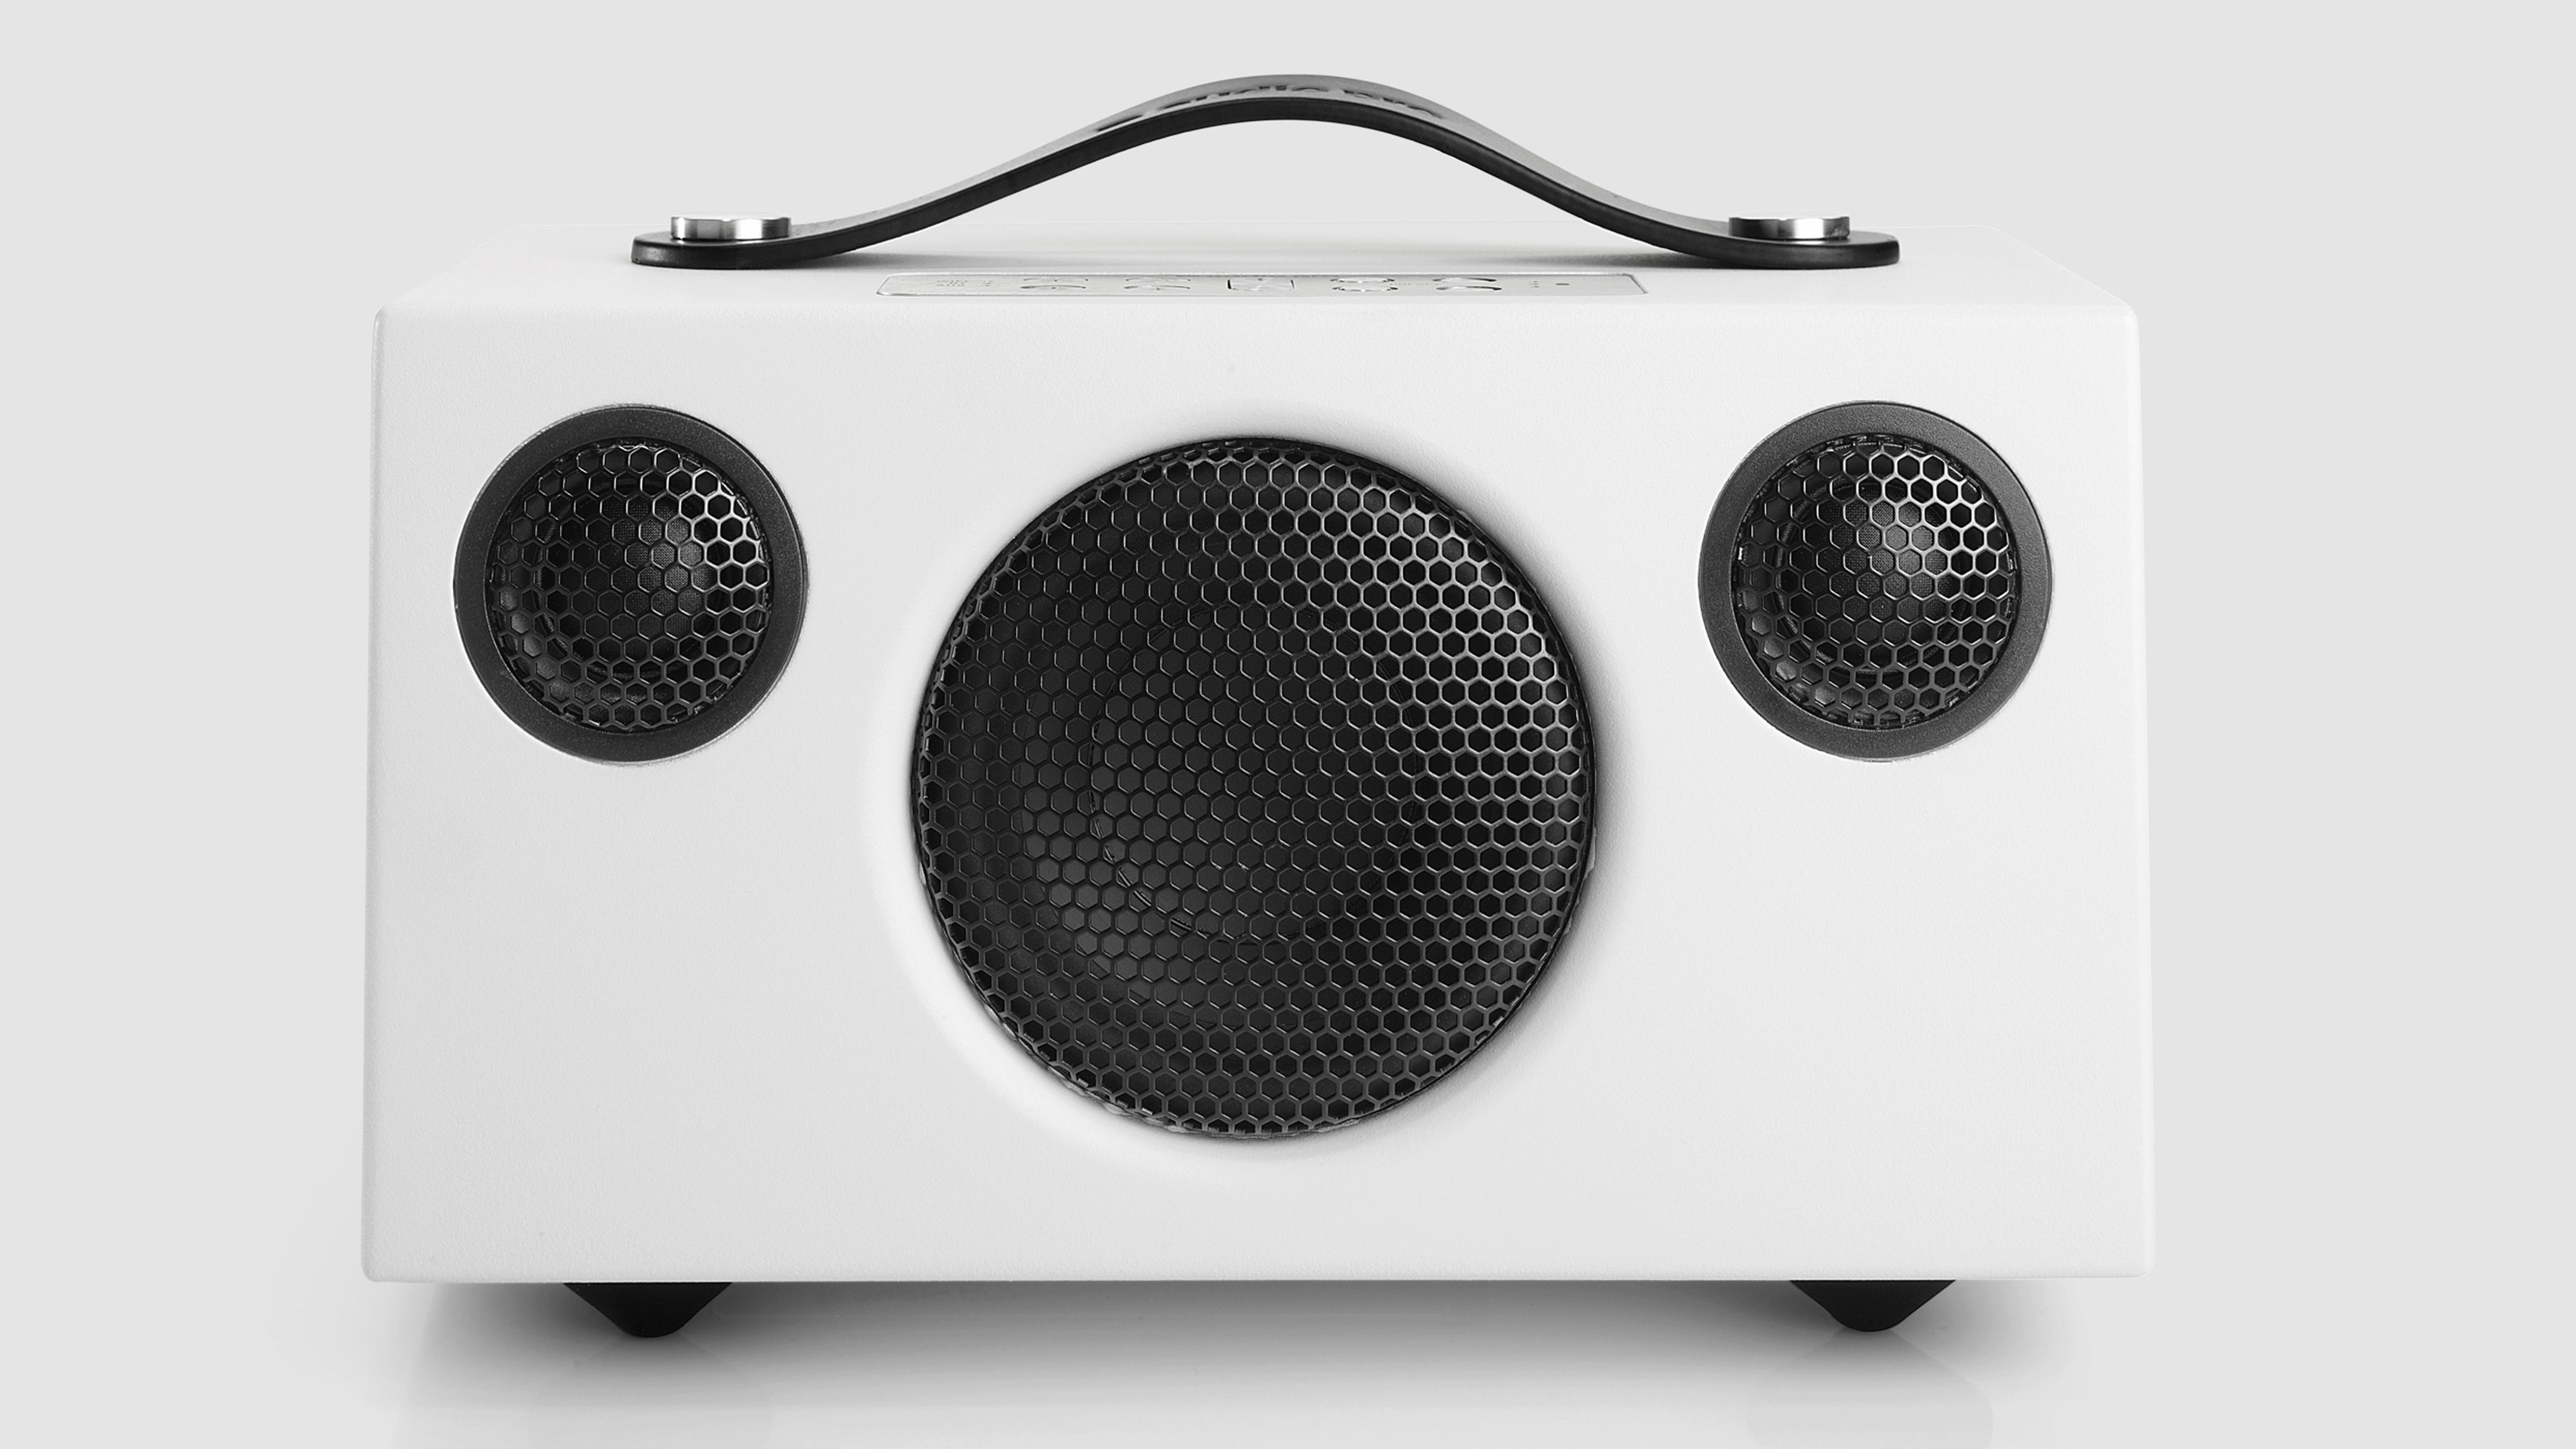 Best Bluetooth Speaker 2020 The Best Wireless Speakers For Audio Quality Cool Bluetooth Speakers Best Wireless Speakers Bluetooth